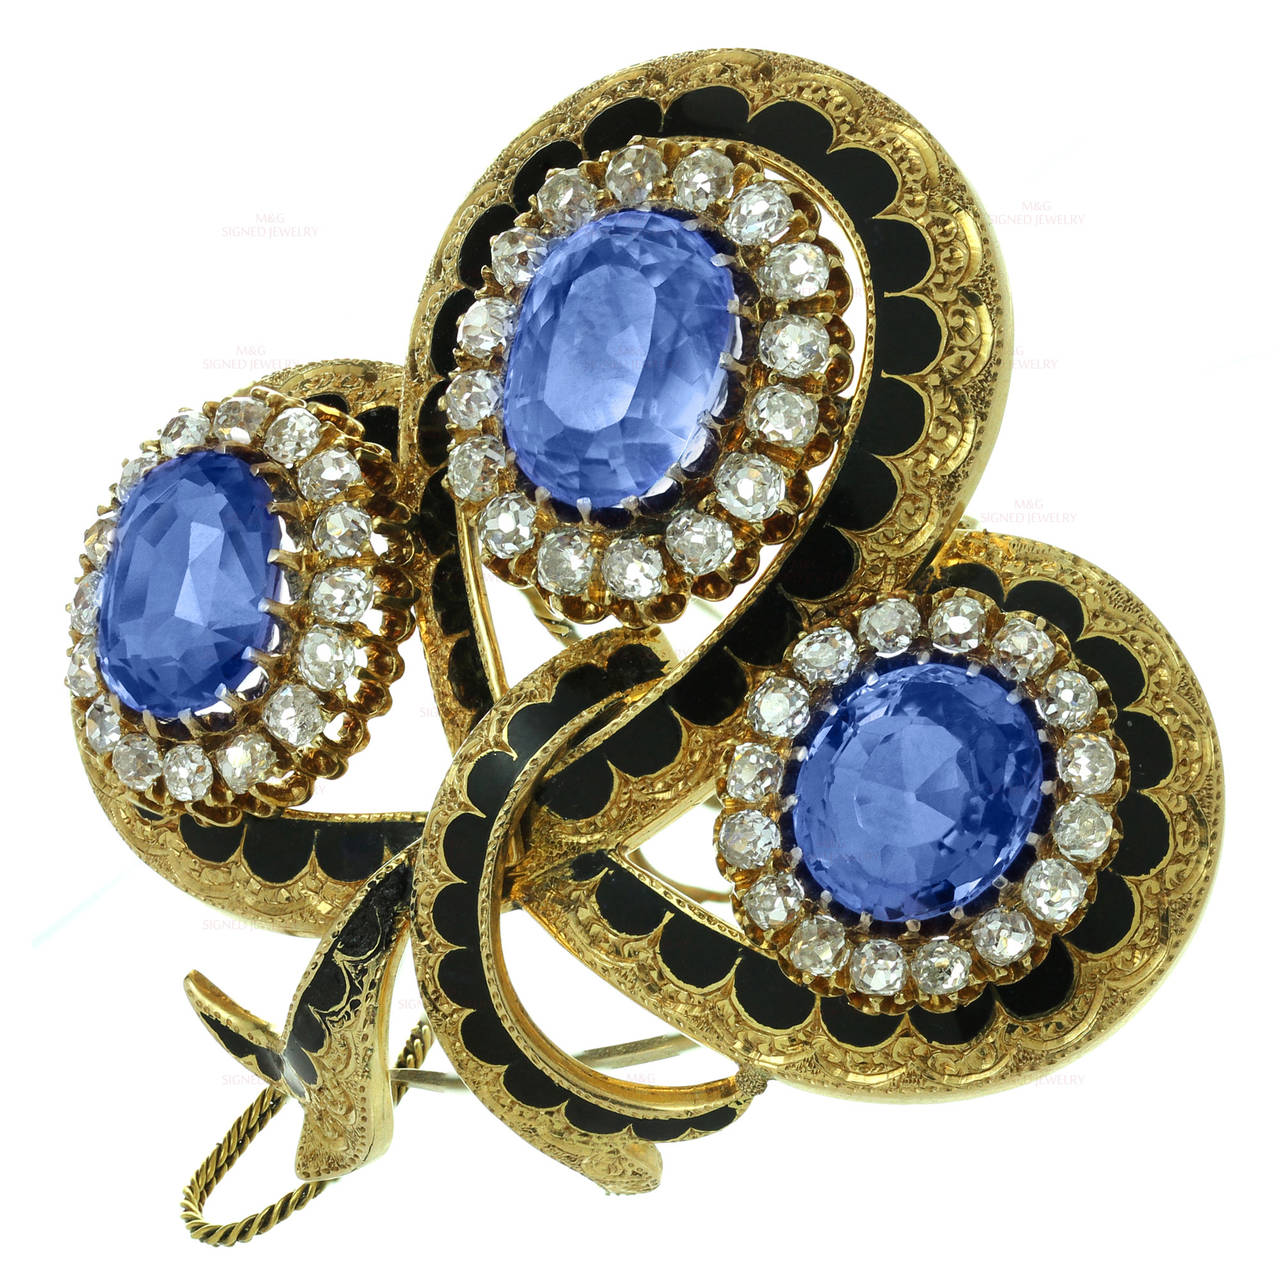 Victorian Enamel Sapphire Diamond Gold Jewelry Suite For Sale 3